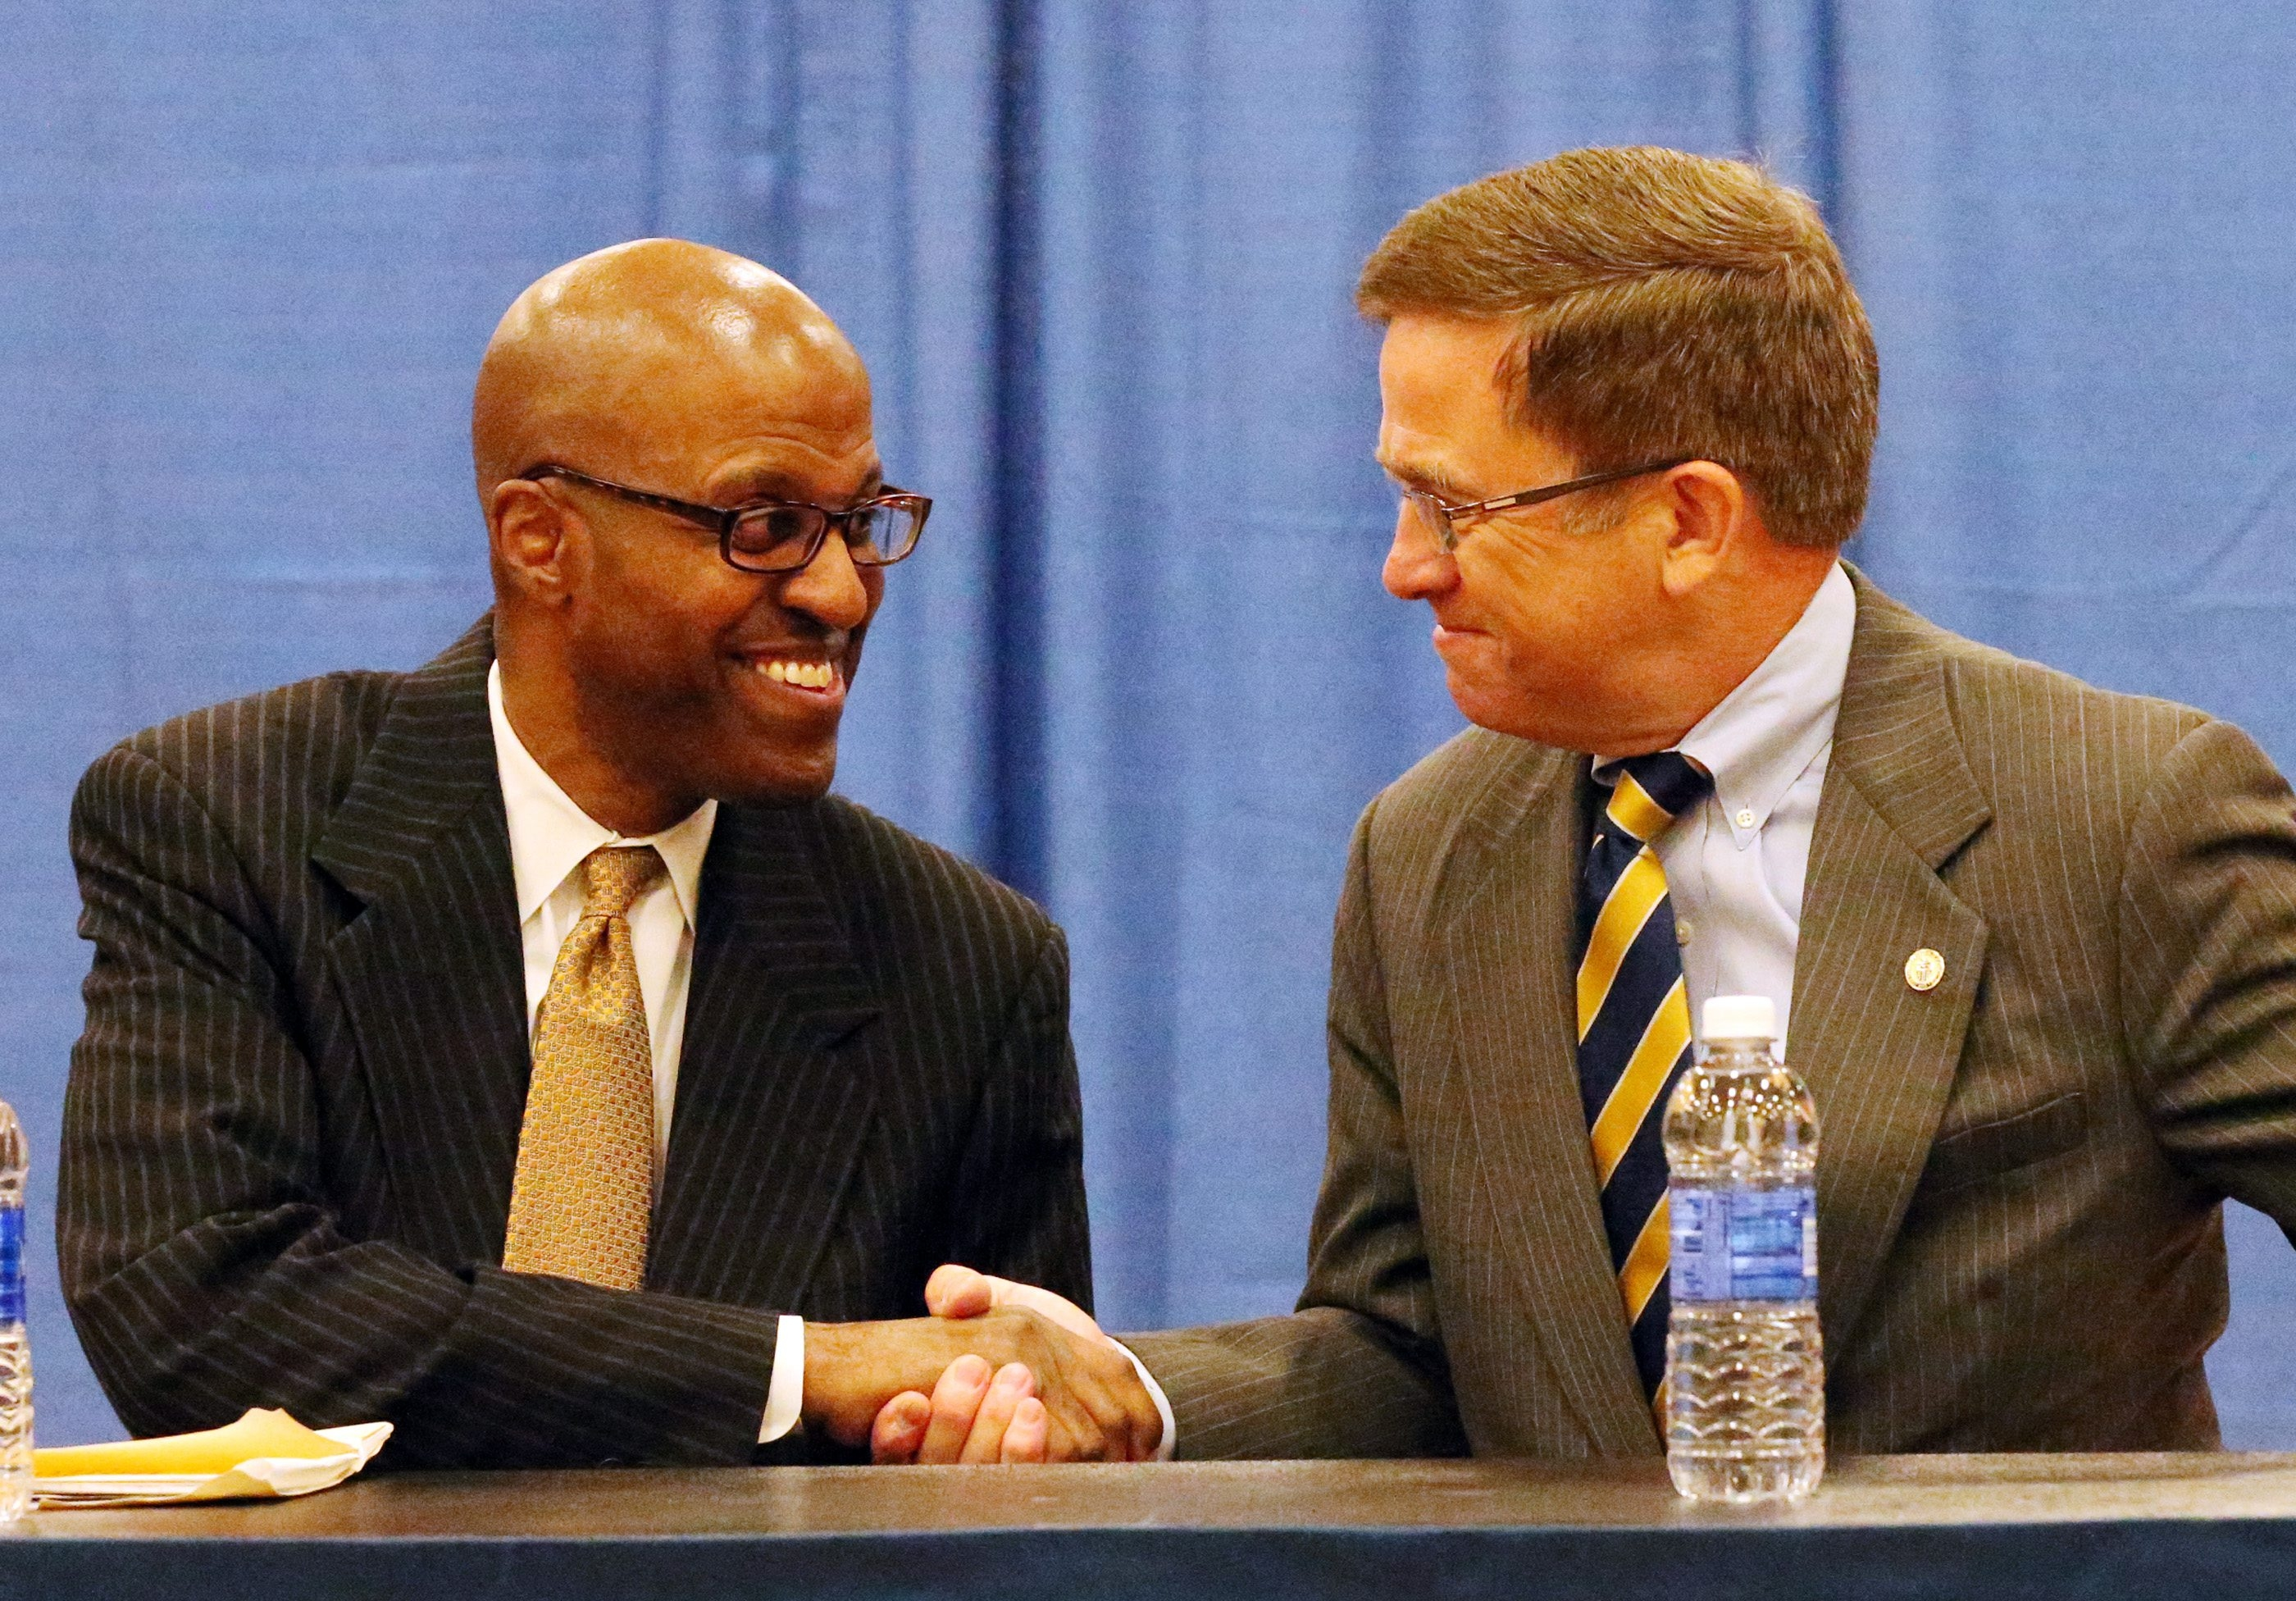 Canisius College President John J. Hurley introduces Reggie Witherspoon as the new head basketball coach during Tuesday's news conference.